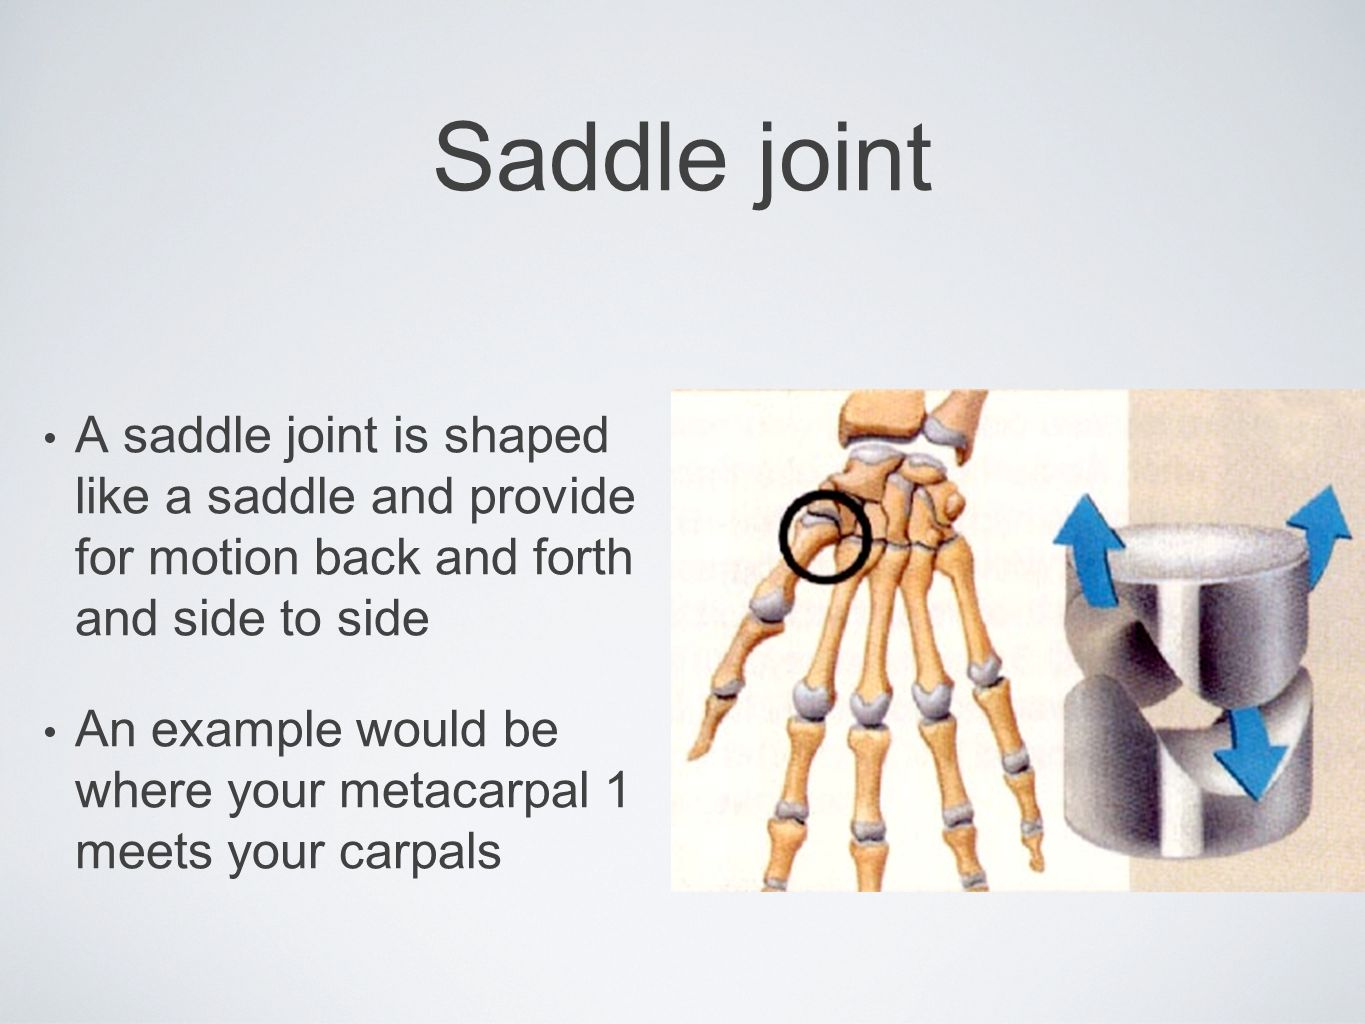 Saddle joint A saddle joint is shaped like a saddle and provide for motion back and forth and side to side.